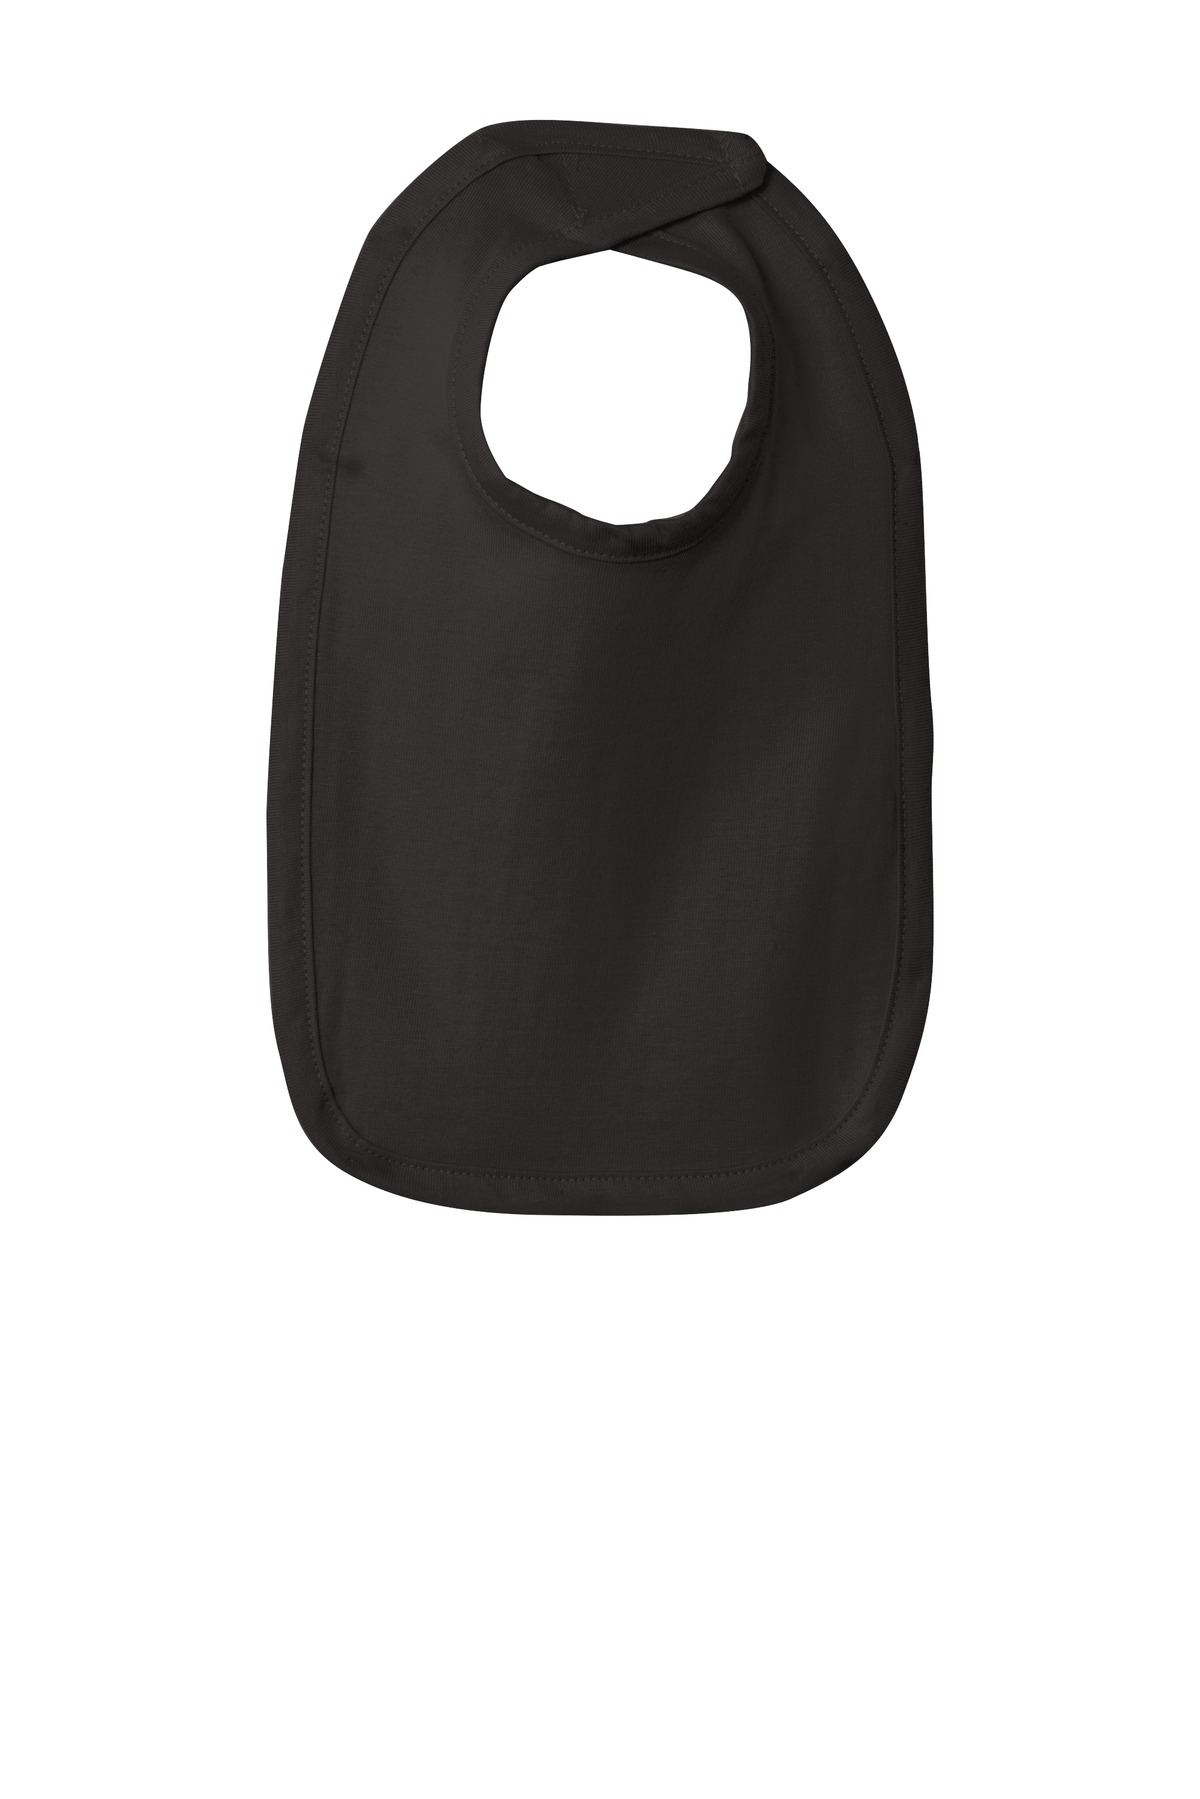 Rabbit Skins ™  Infant Premium Jersey Bib. RS1005 - Black